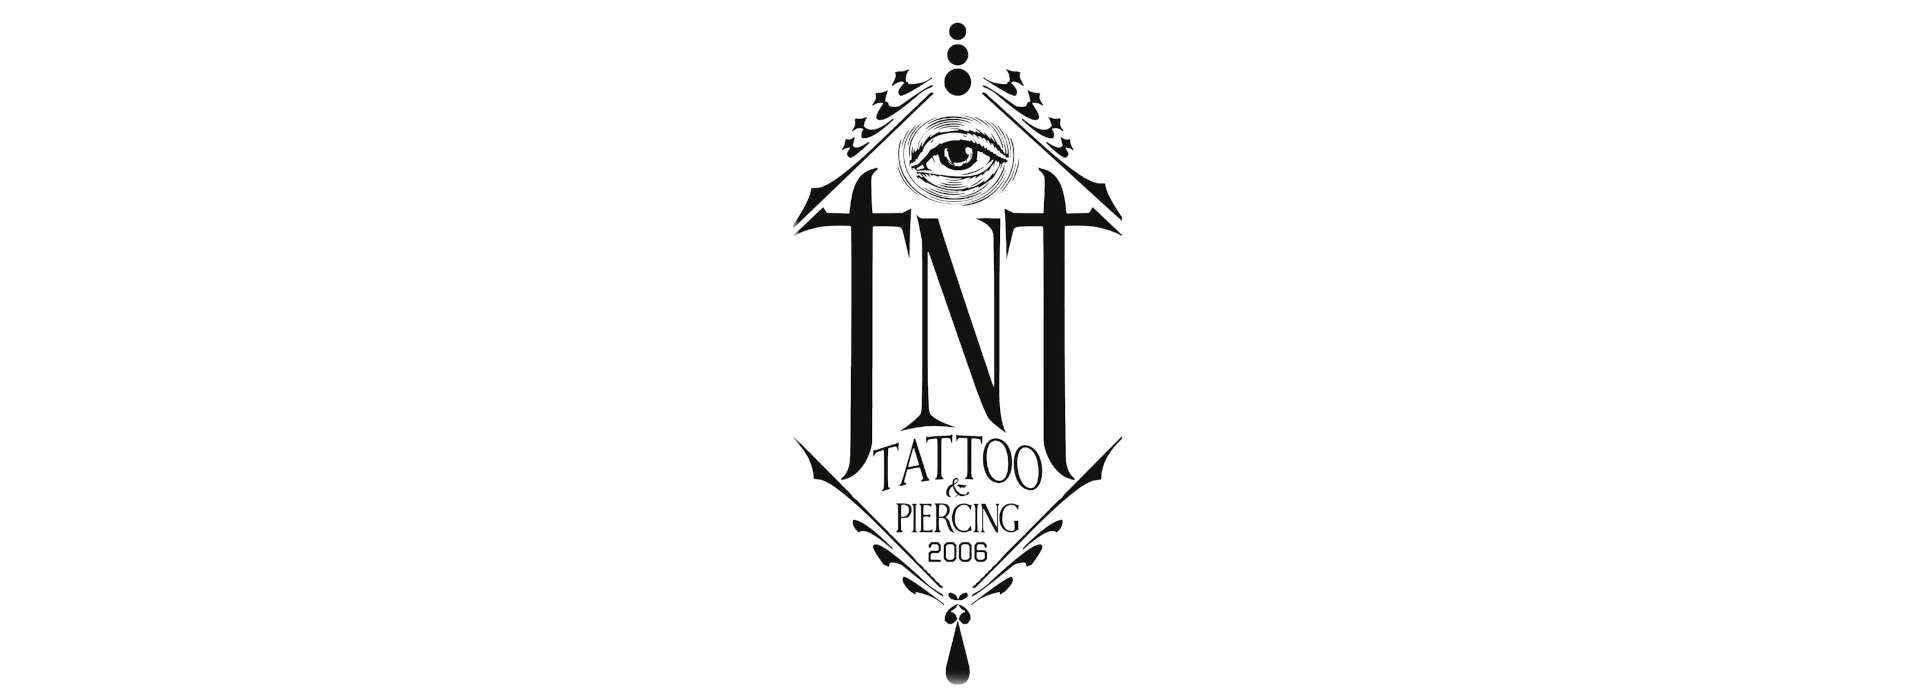 TNT TATTOO  di Ratto Erika